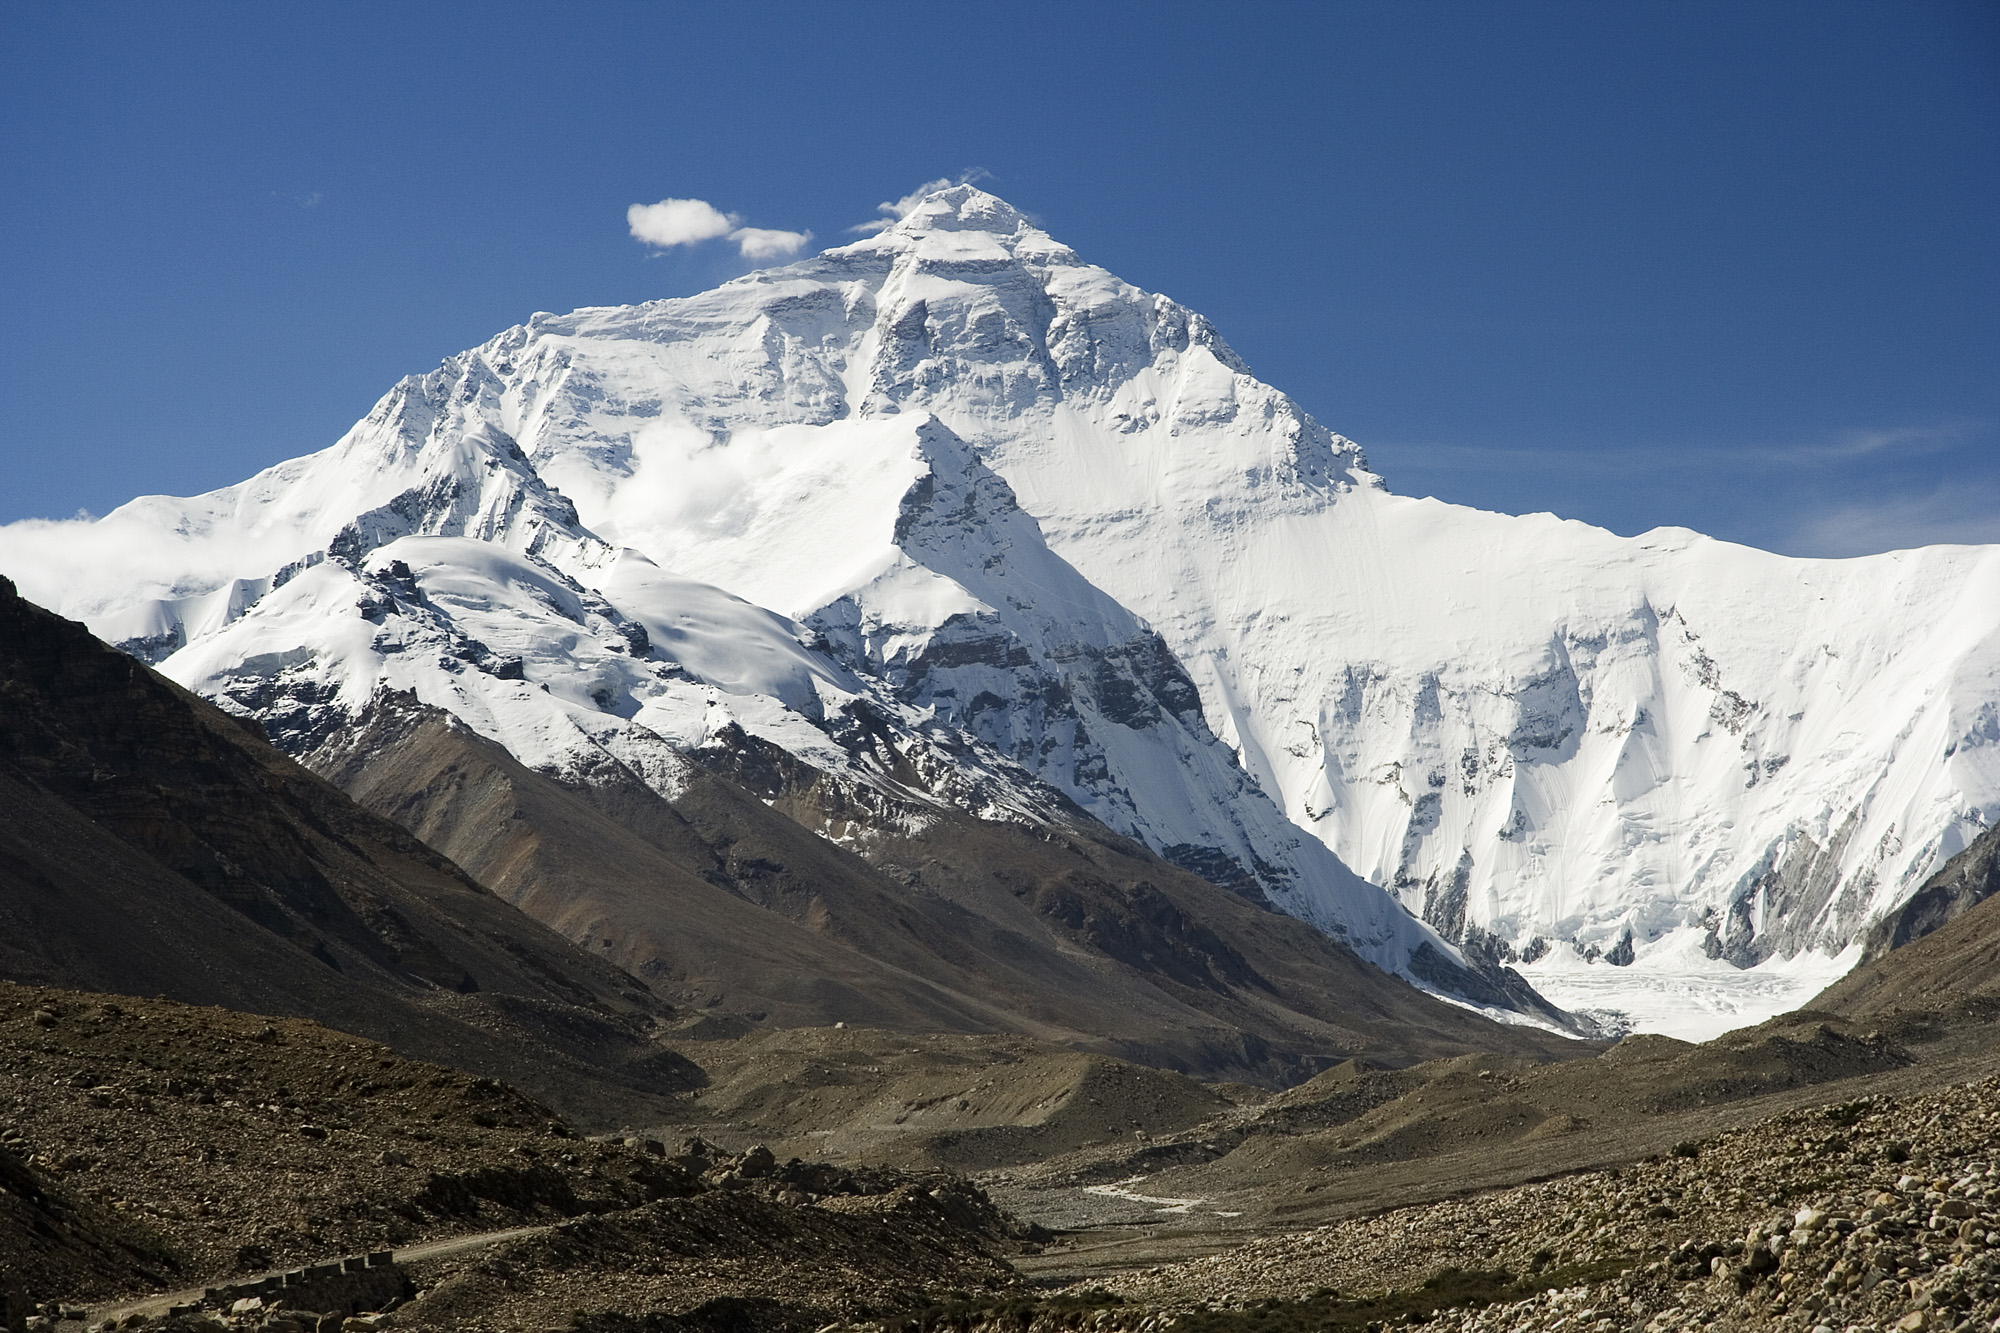 Everest_North_Face_toward_Base_Camp_Tibet_Luca_Galuzzi_2006